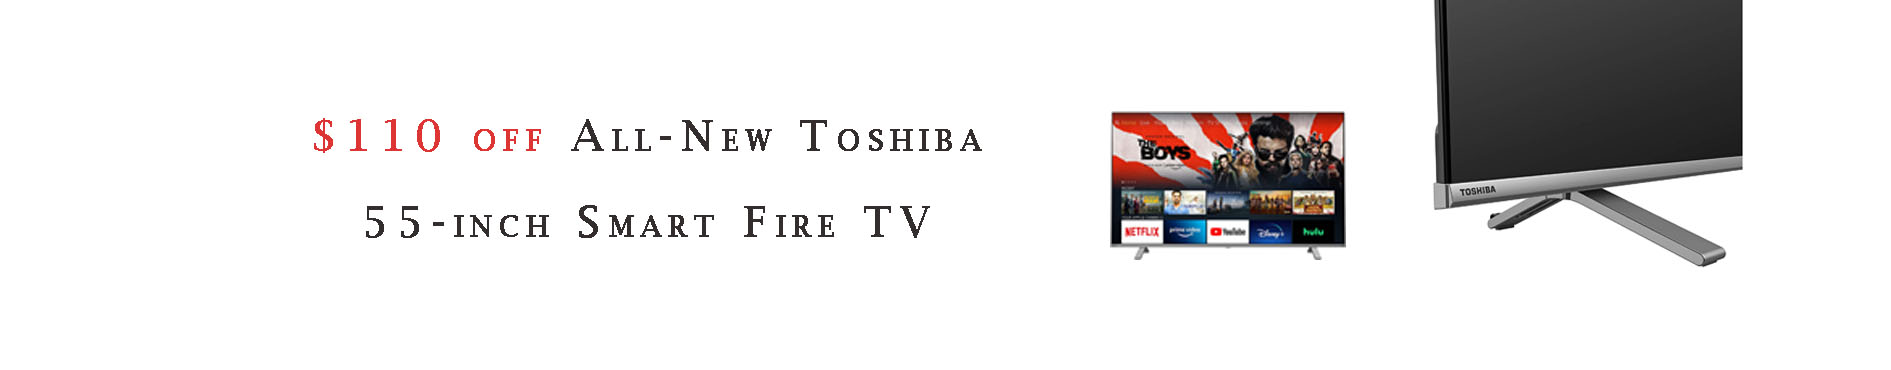 Promos for Fire TVs